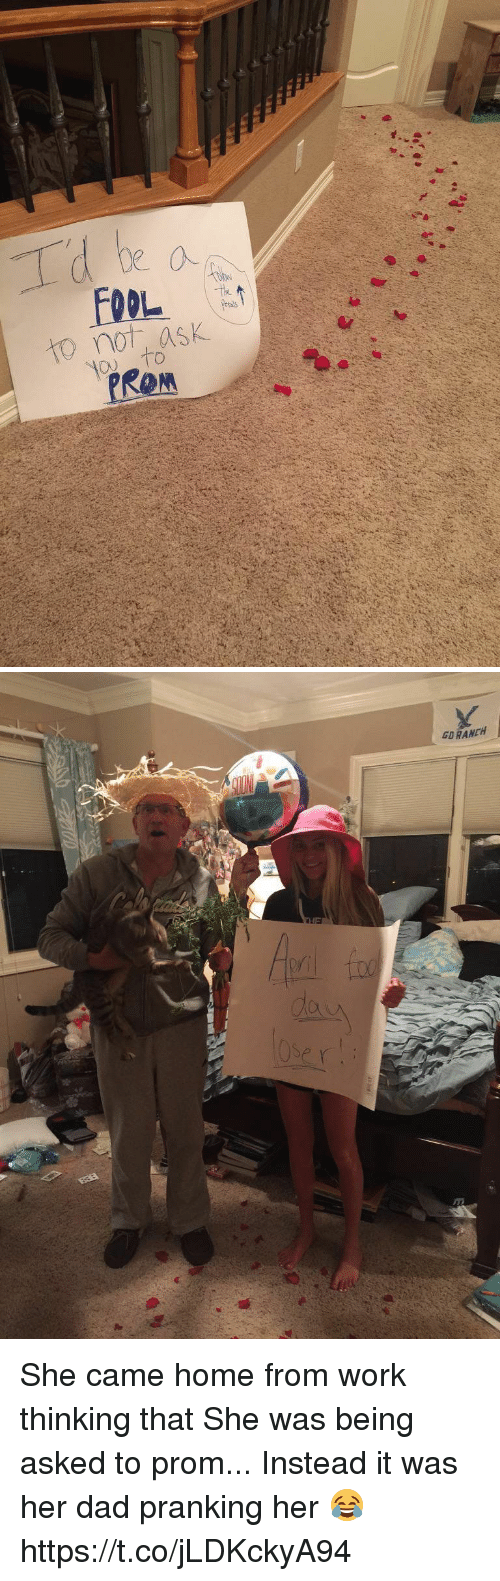 Dad, Work, and Home: to not ask   GD RANCH She came home from work thinking that She was being asked to prom... Instead it was her dad pranking her 😂 https://t.co/jLDKckyA94